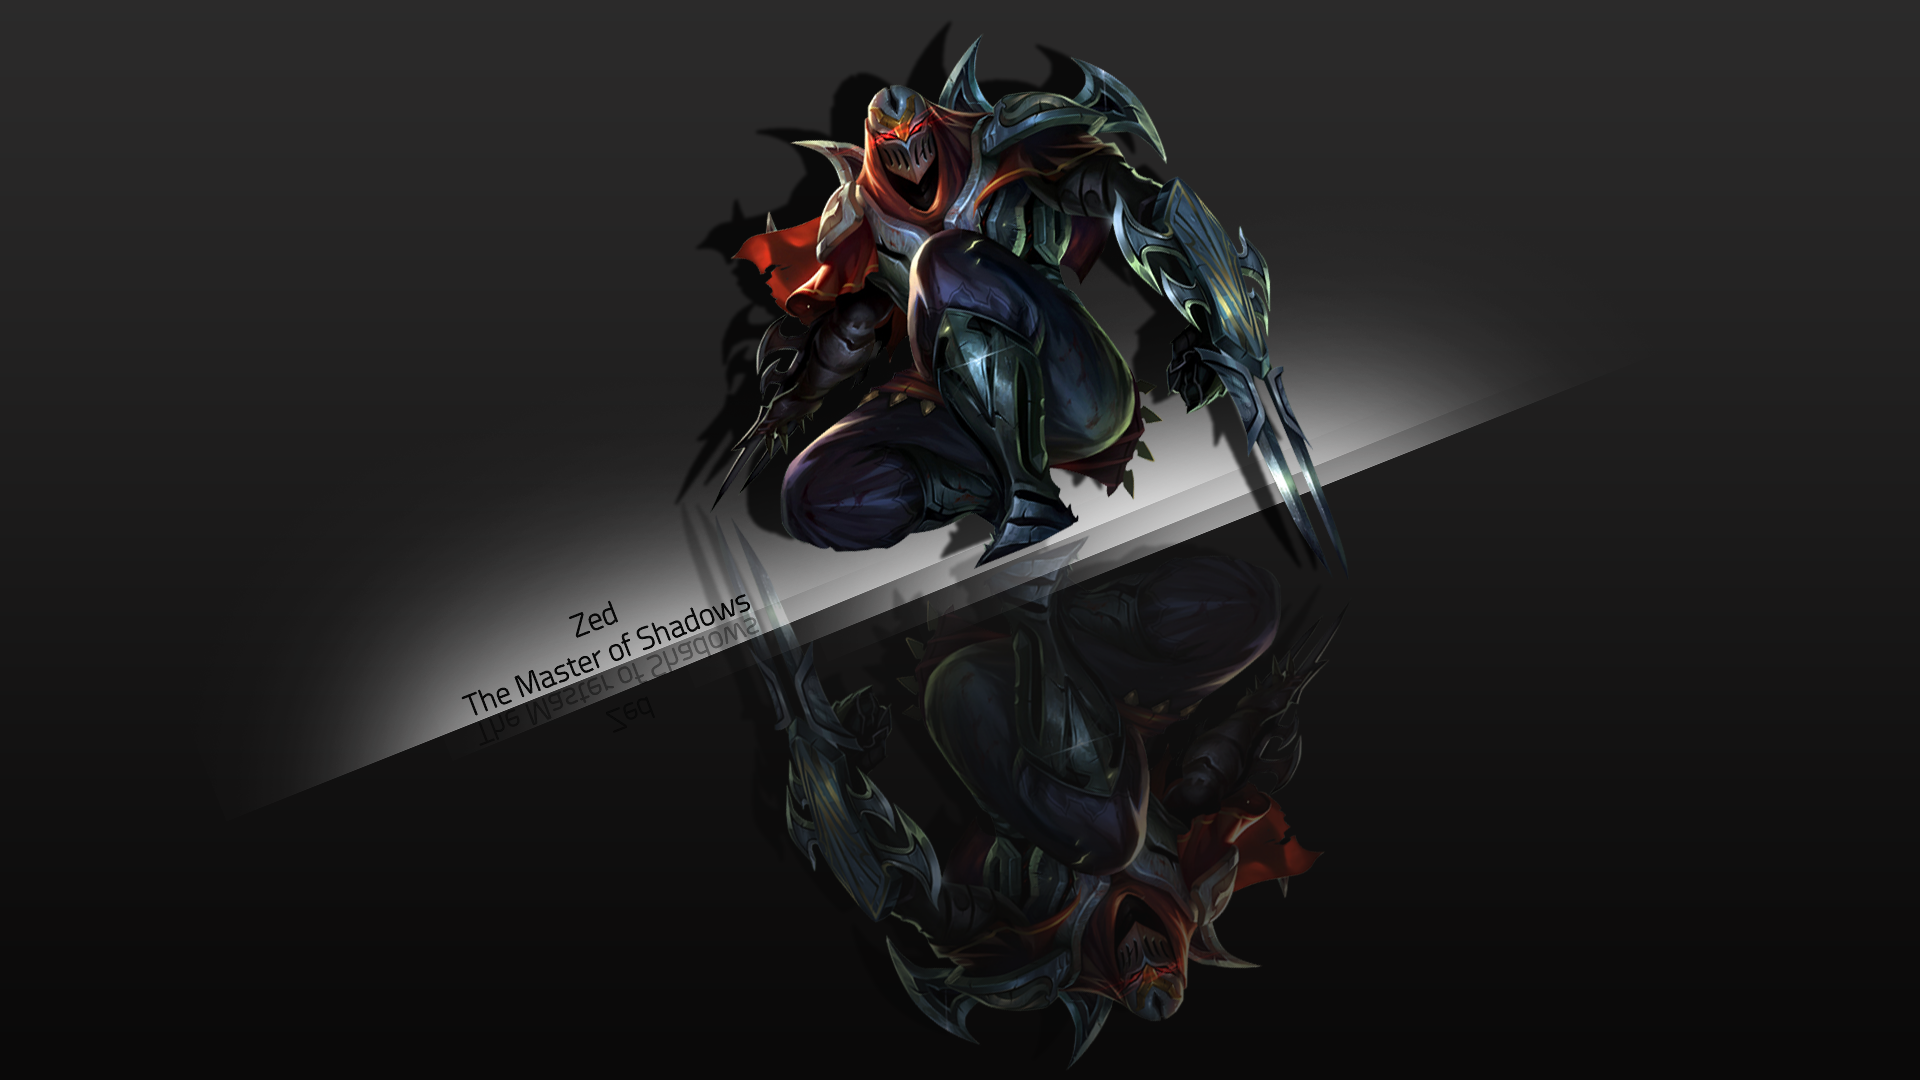 . PlusPng.com Zed - The Master of Shadows by Xael-Design - Zed The Master Of Shadows PNG